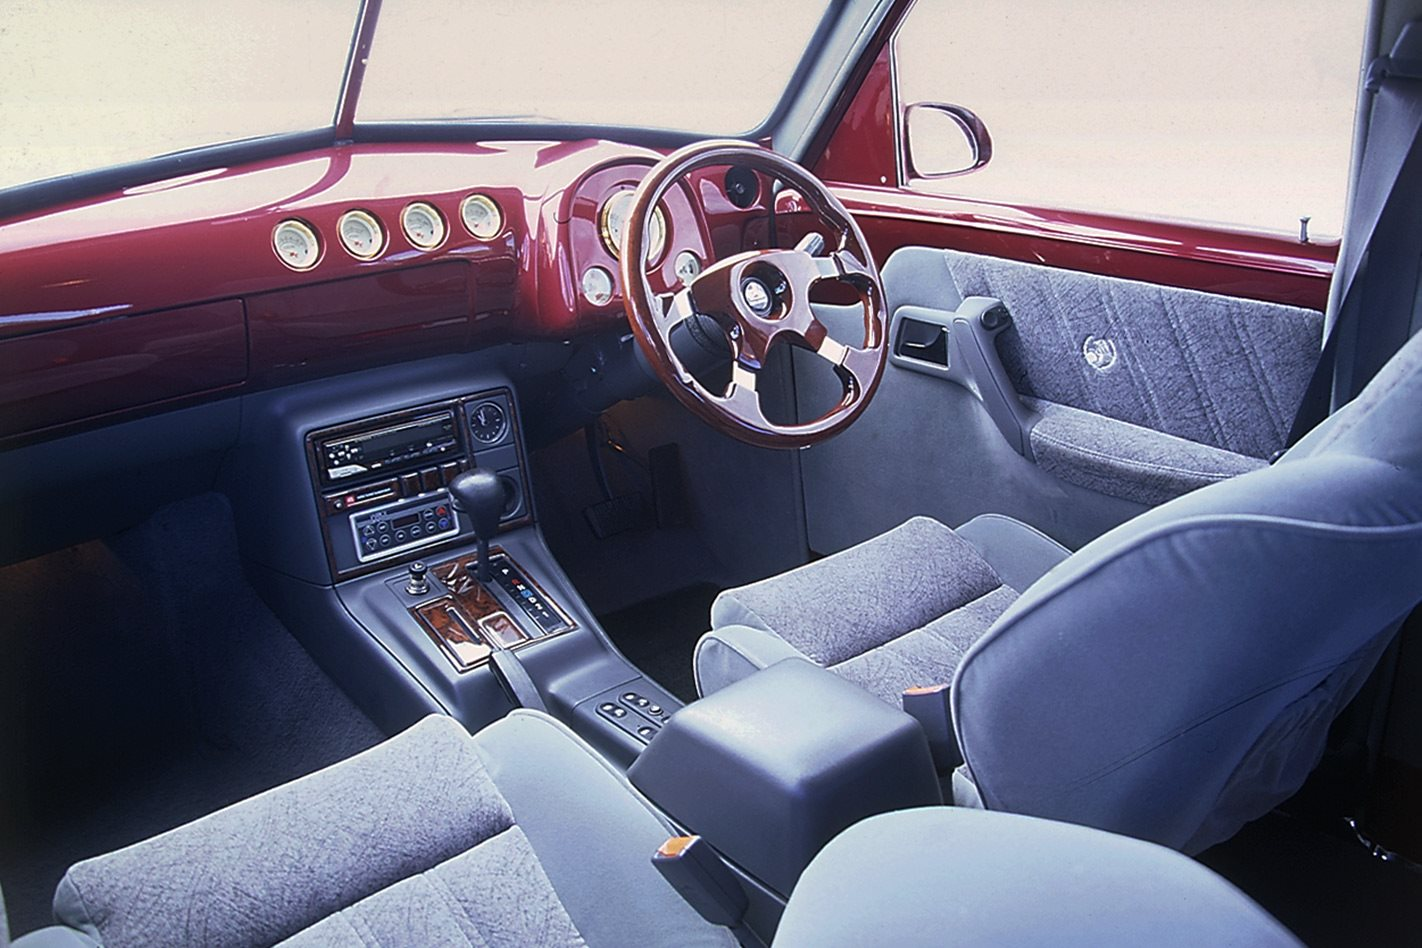 Holden FX interior